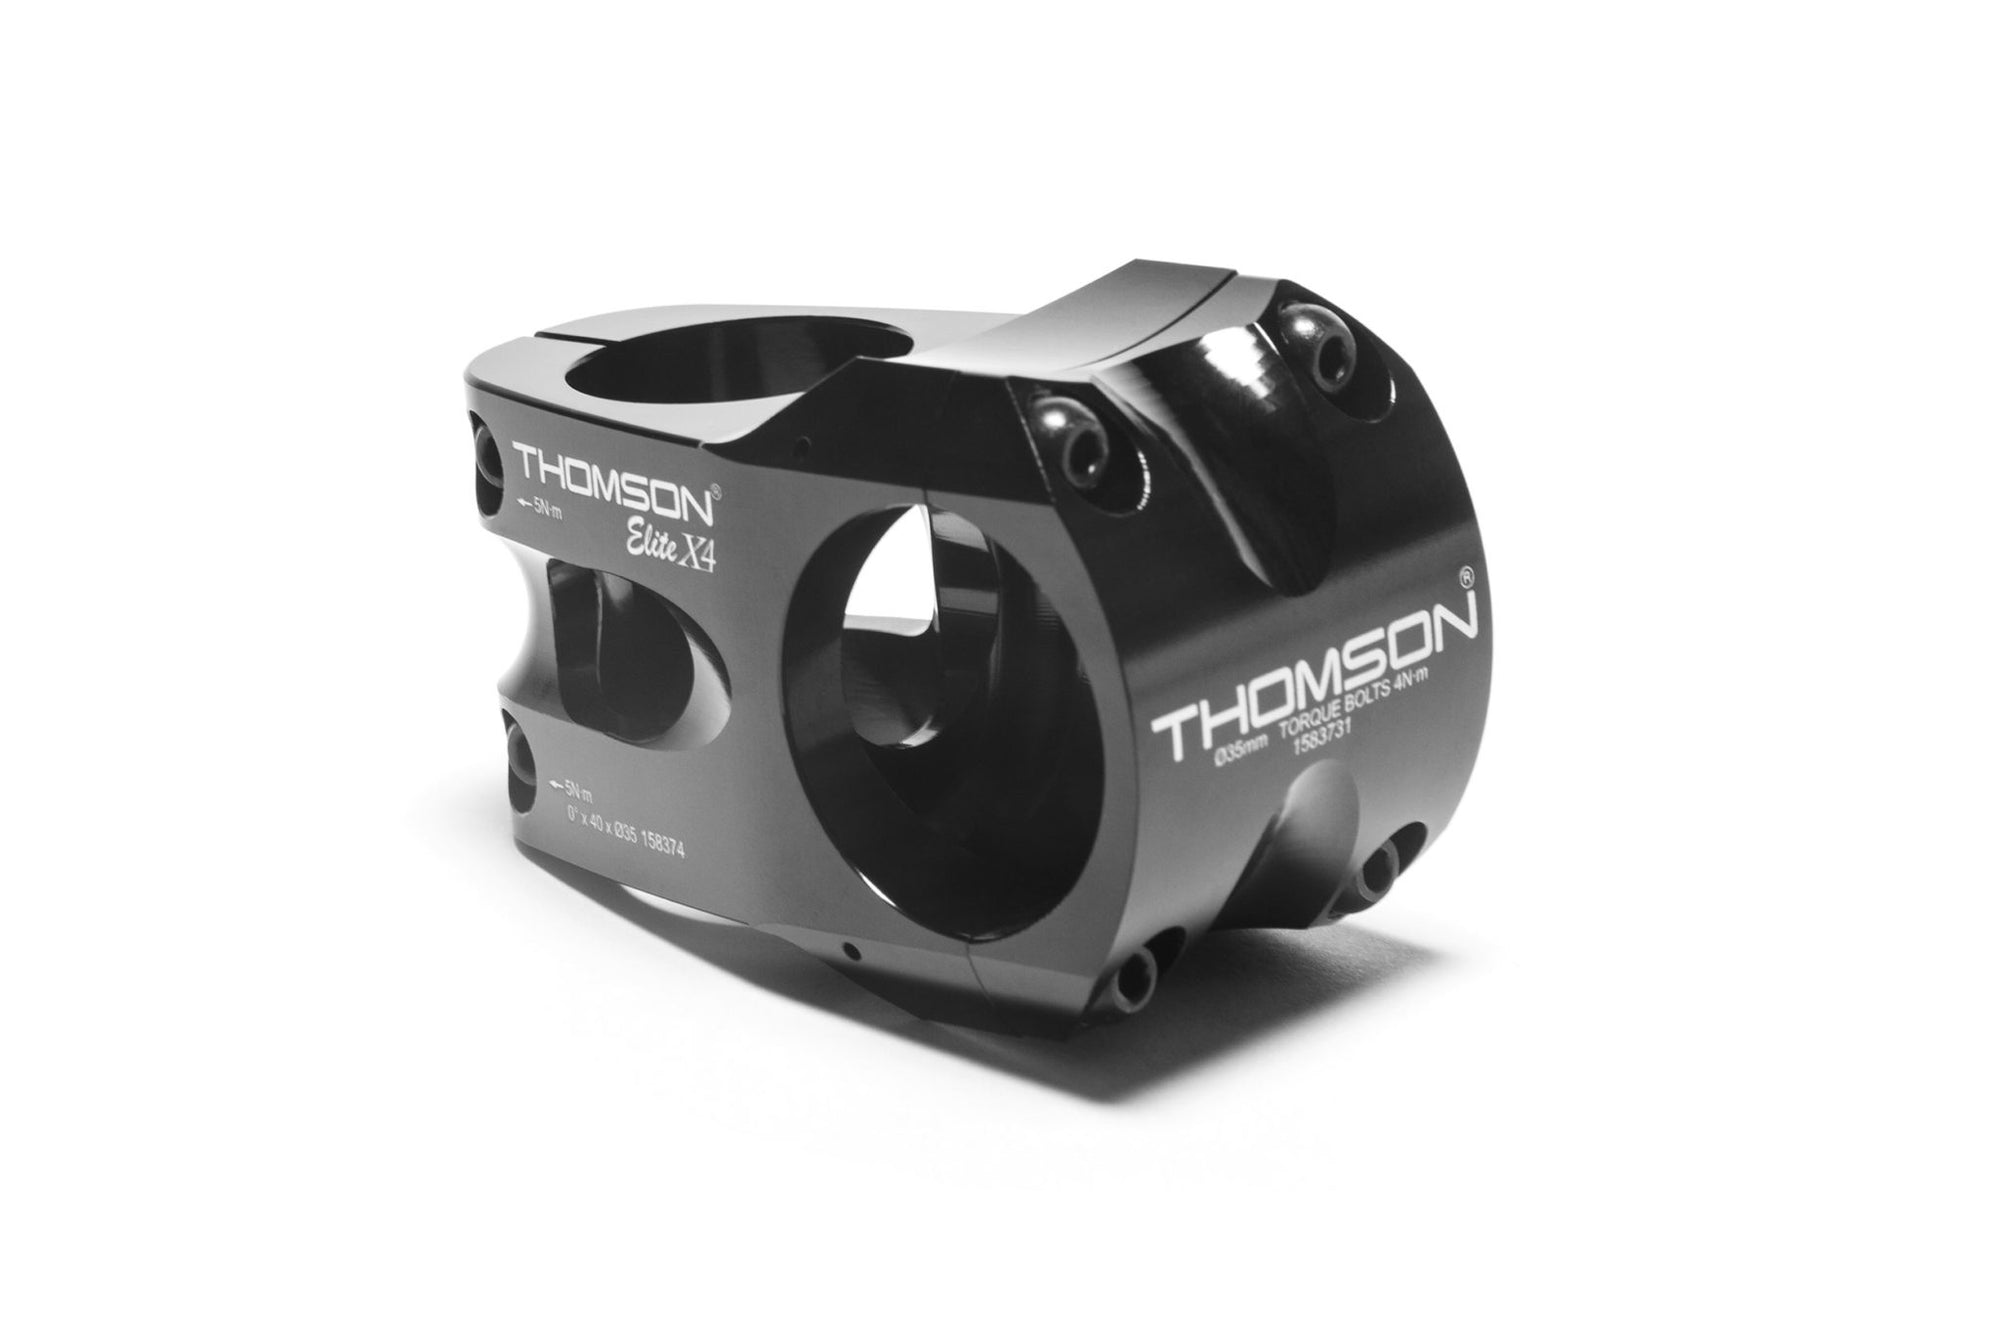 THOMSON X4 35 CLAMP STEM